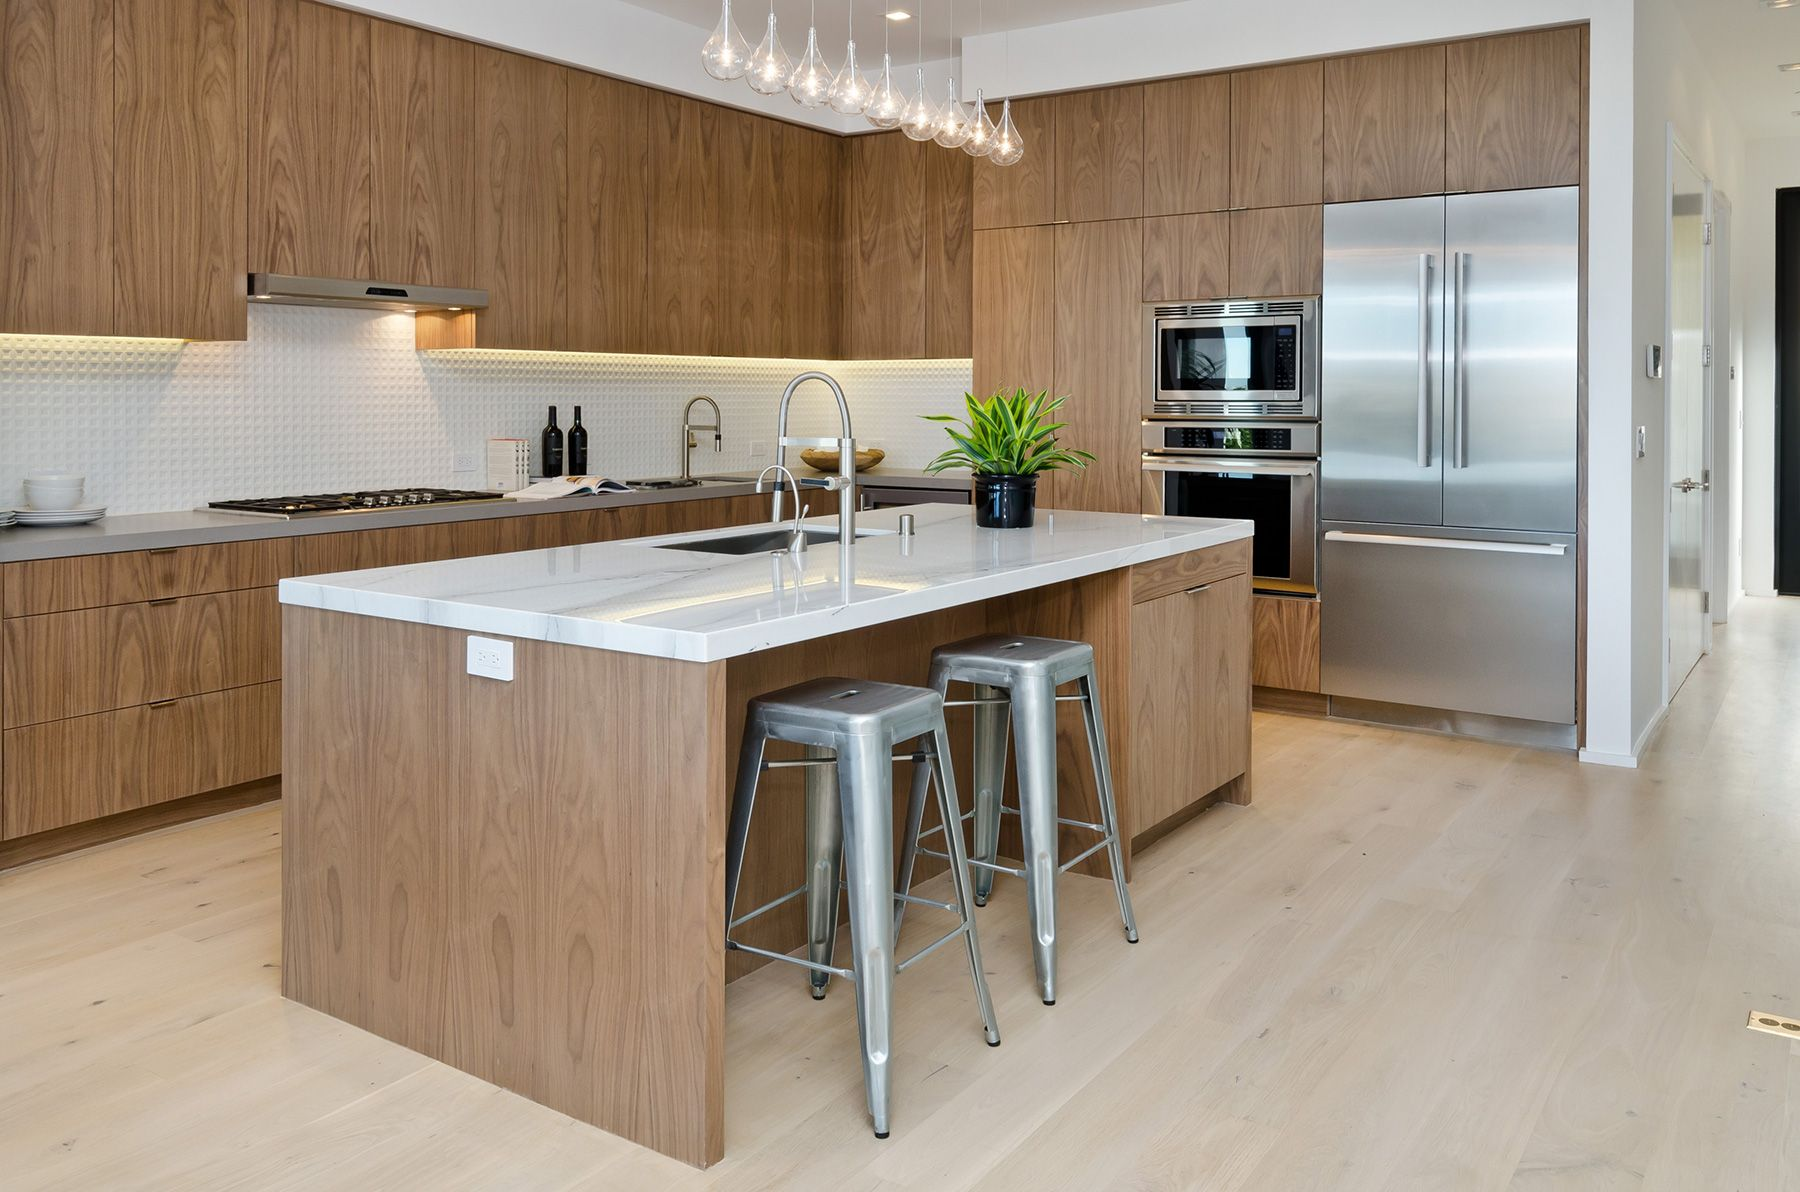 Clean Lines And Smooth Finishes Accentuate This Kitchens Modern Aesthetic